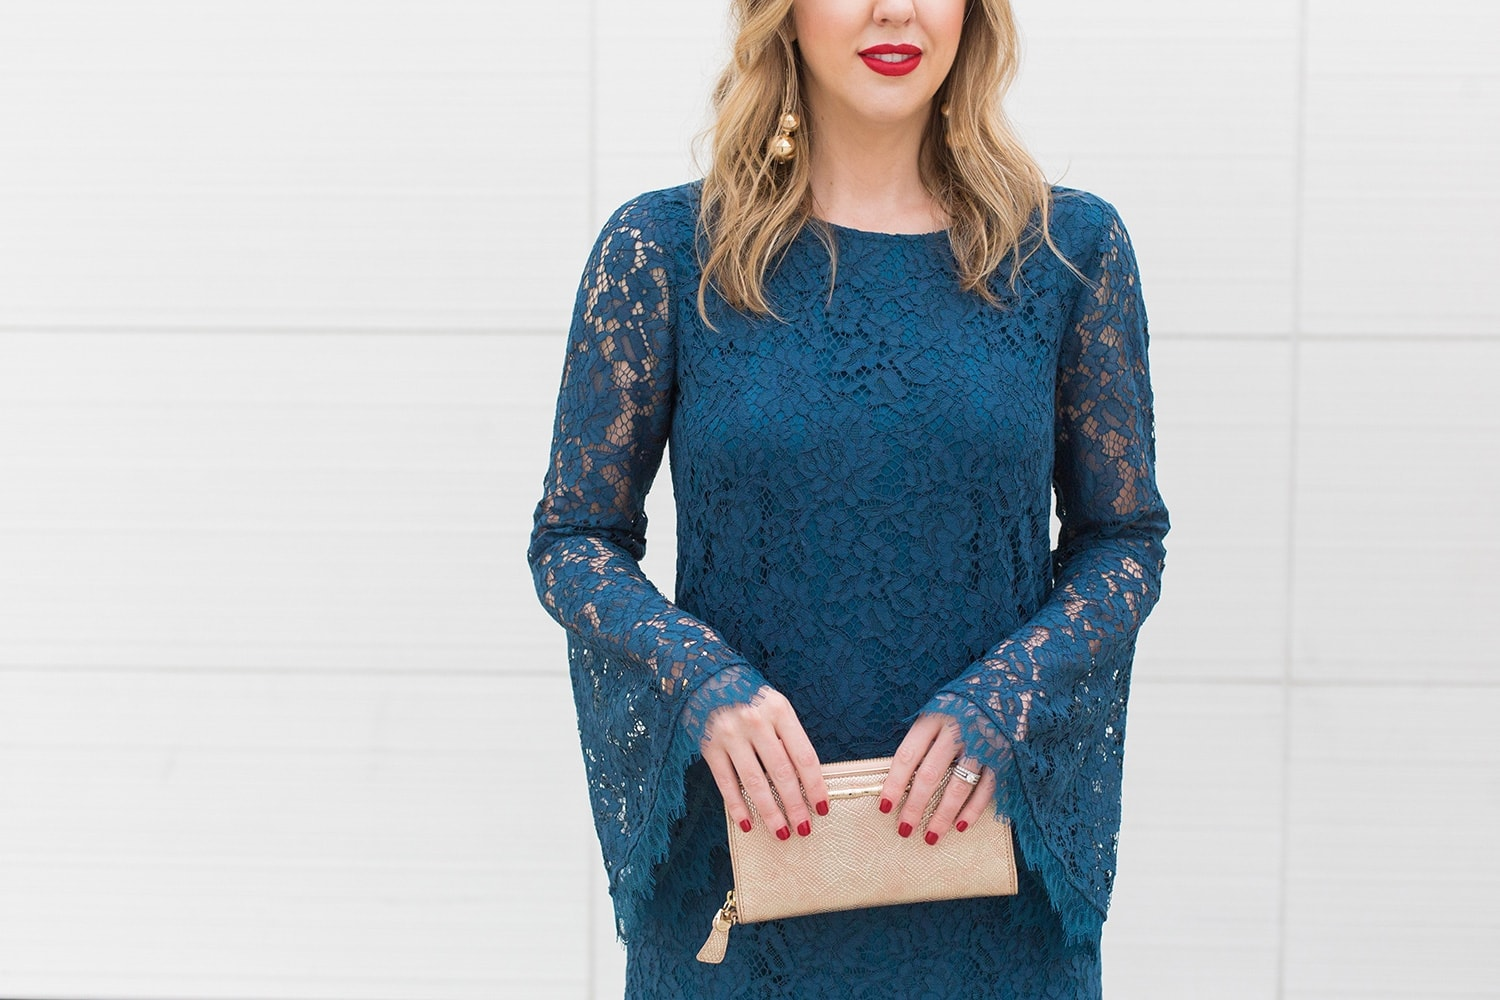 detail shot of blue bell sleeve lace dress with gold clutch, gold earrings, and red lipstick - by Houston blogger Meg O.